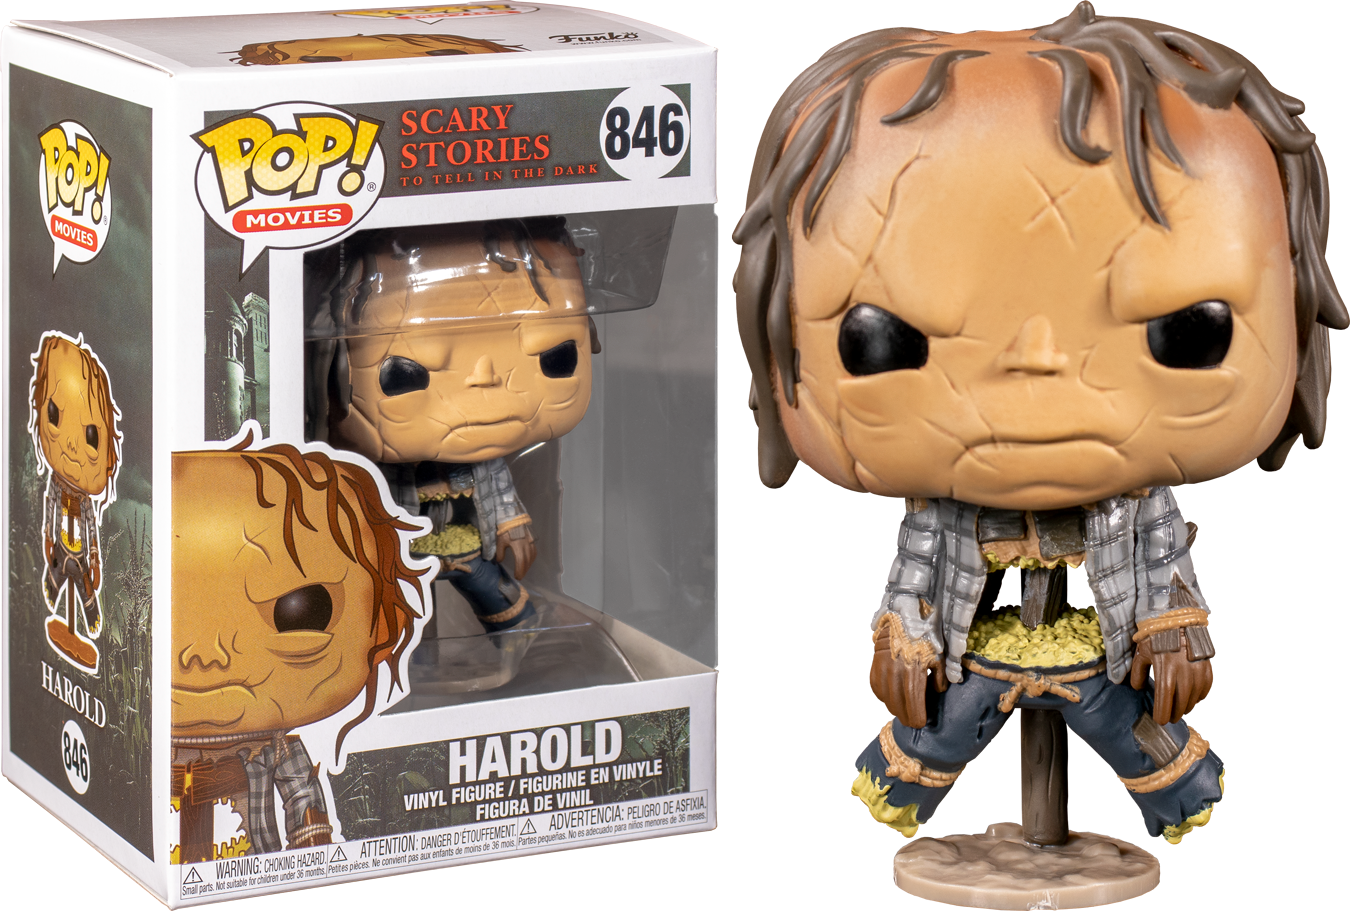 Funko Scary Stories To Tell In The Dark - Harold the Scarecrow Pop! Vinyl Figure